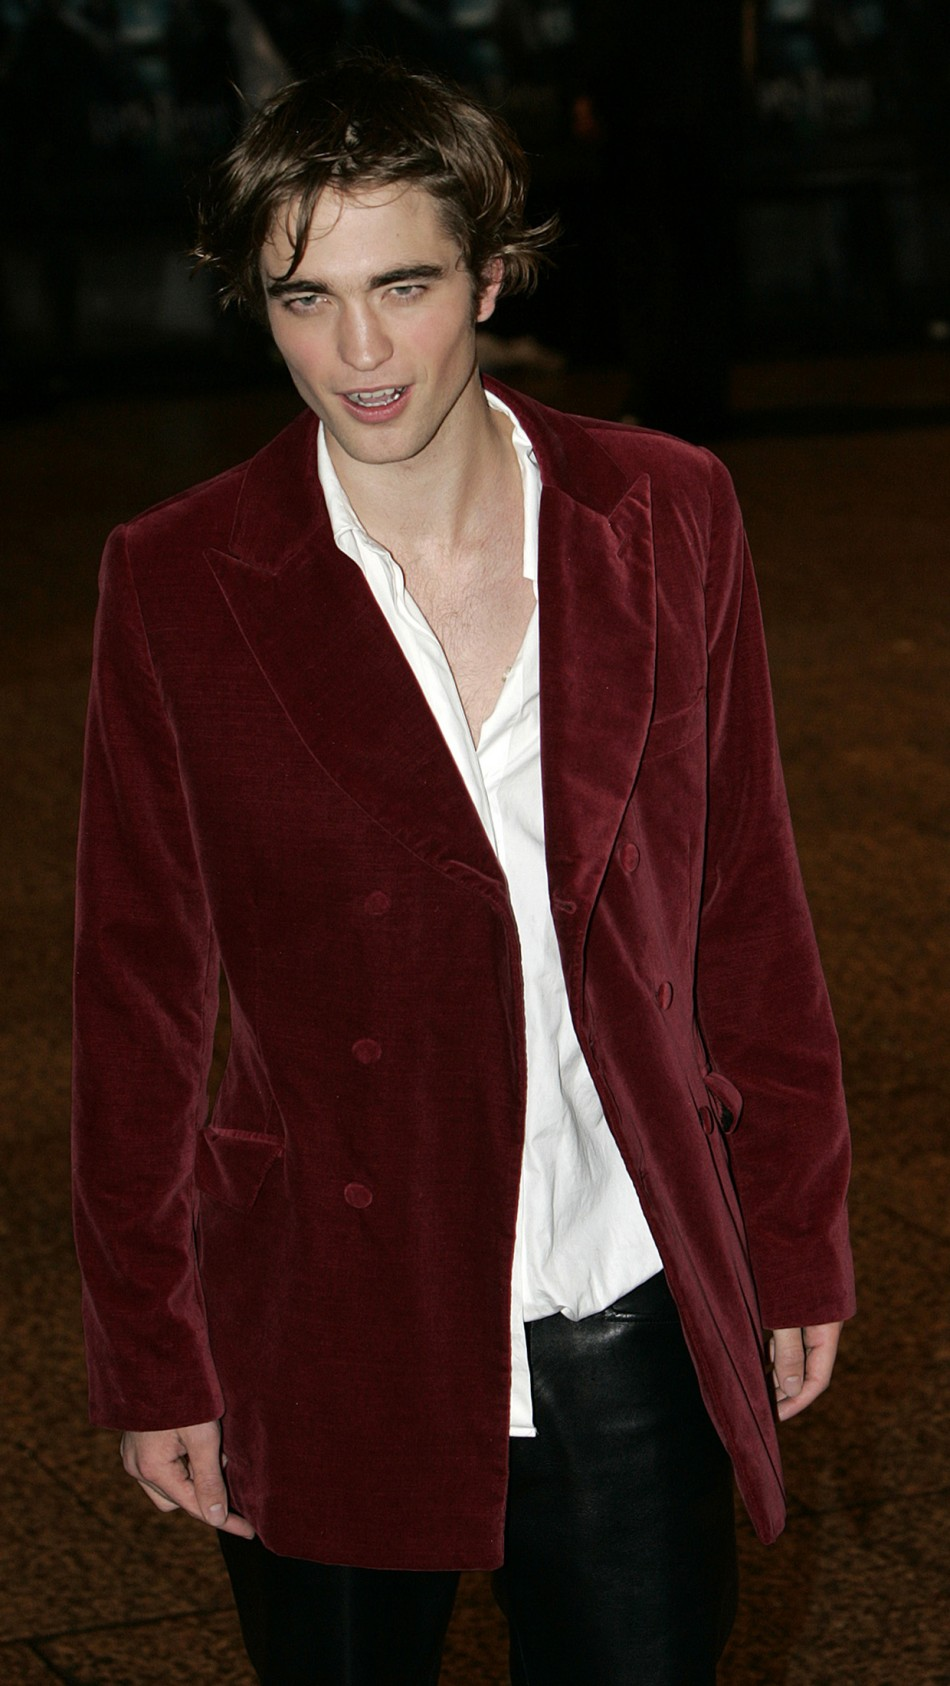 Robert Pattinson at the world premiere of Harry Potter and the Goblet of Fire